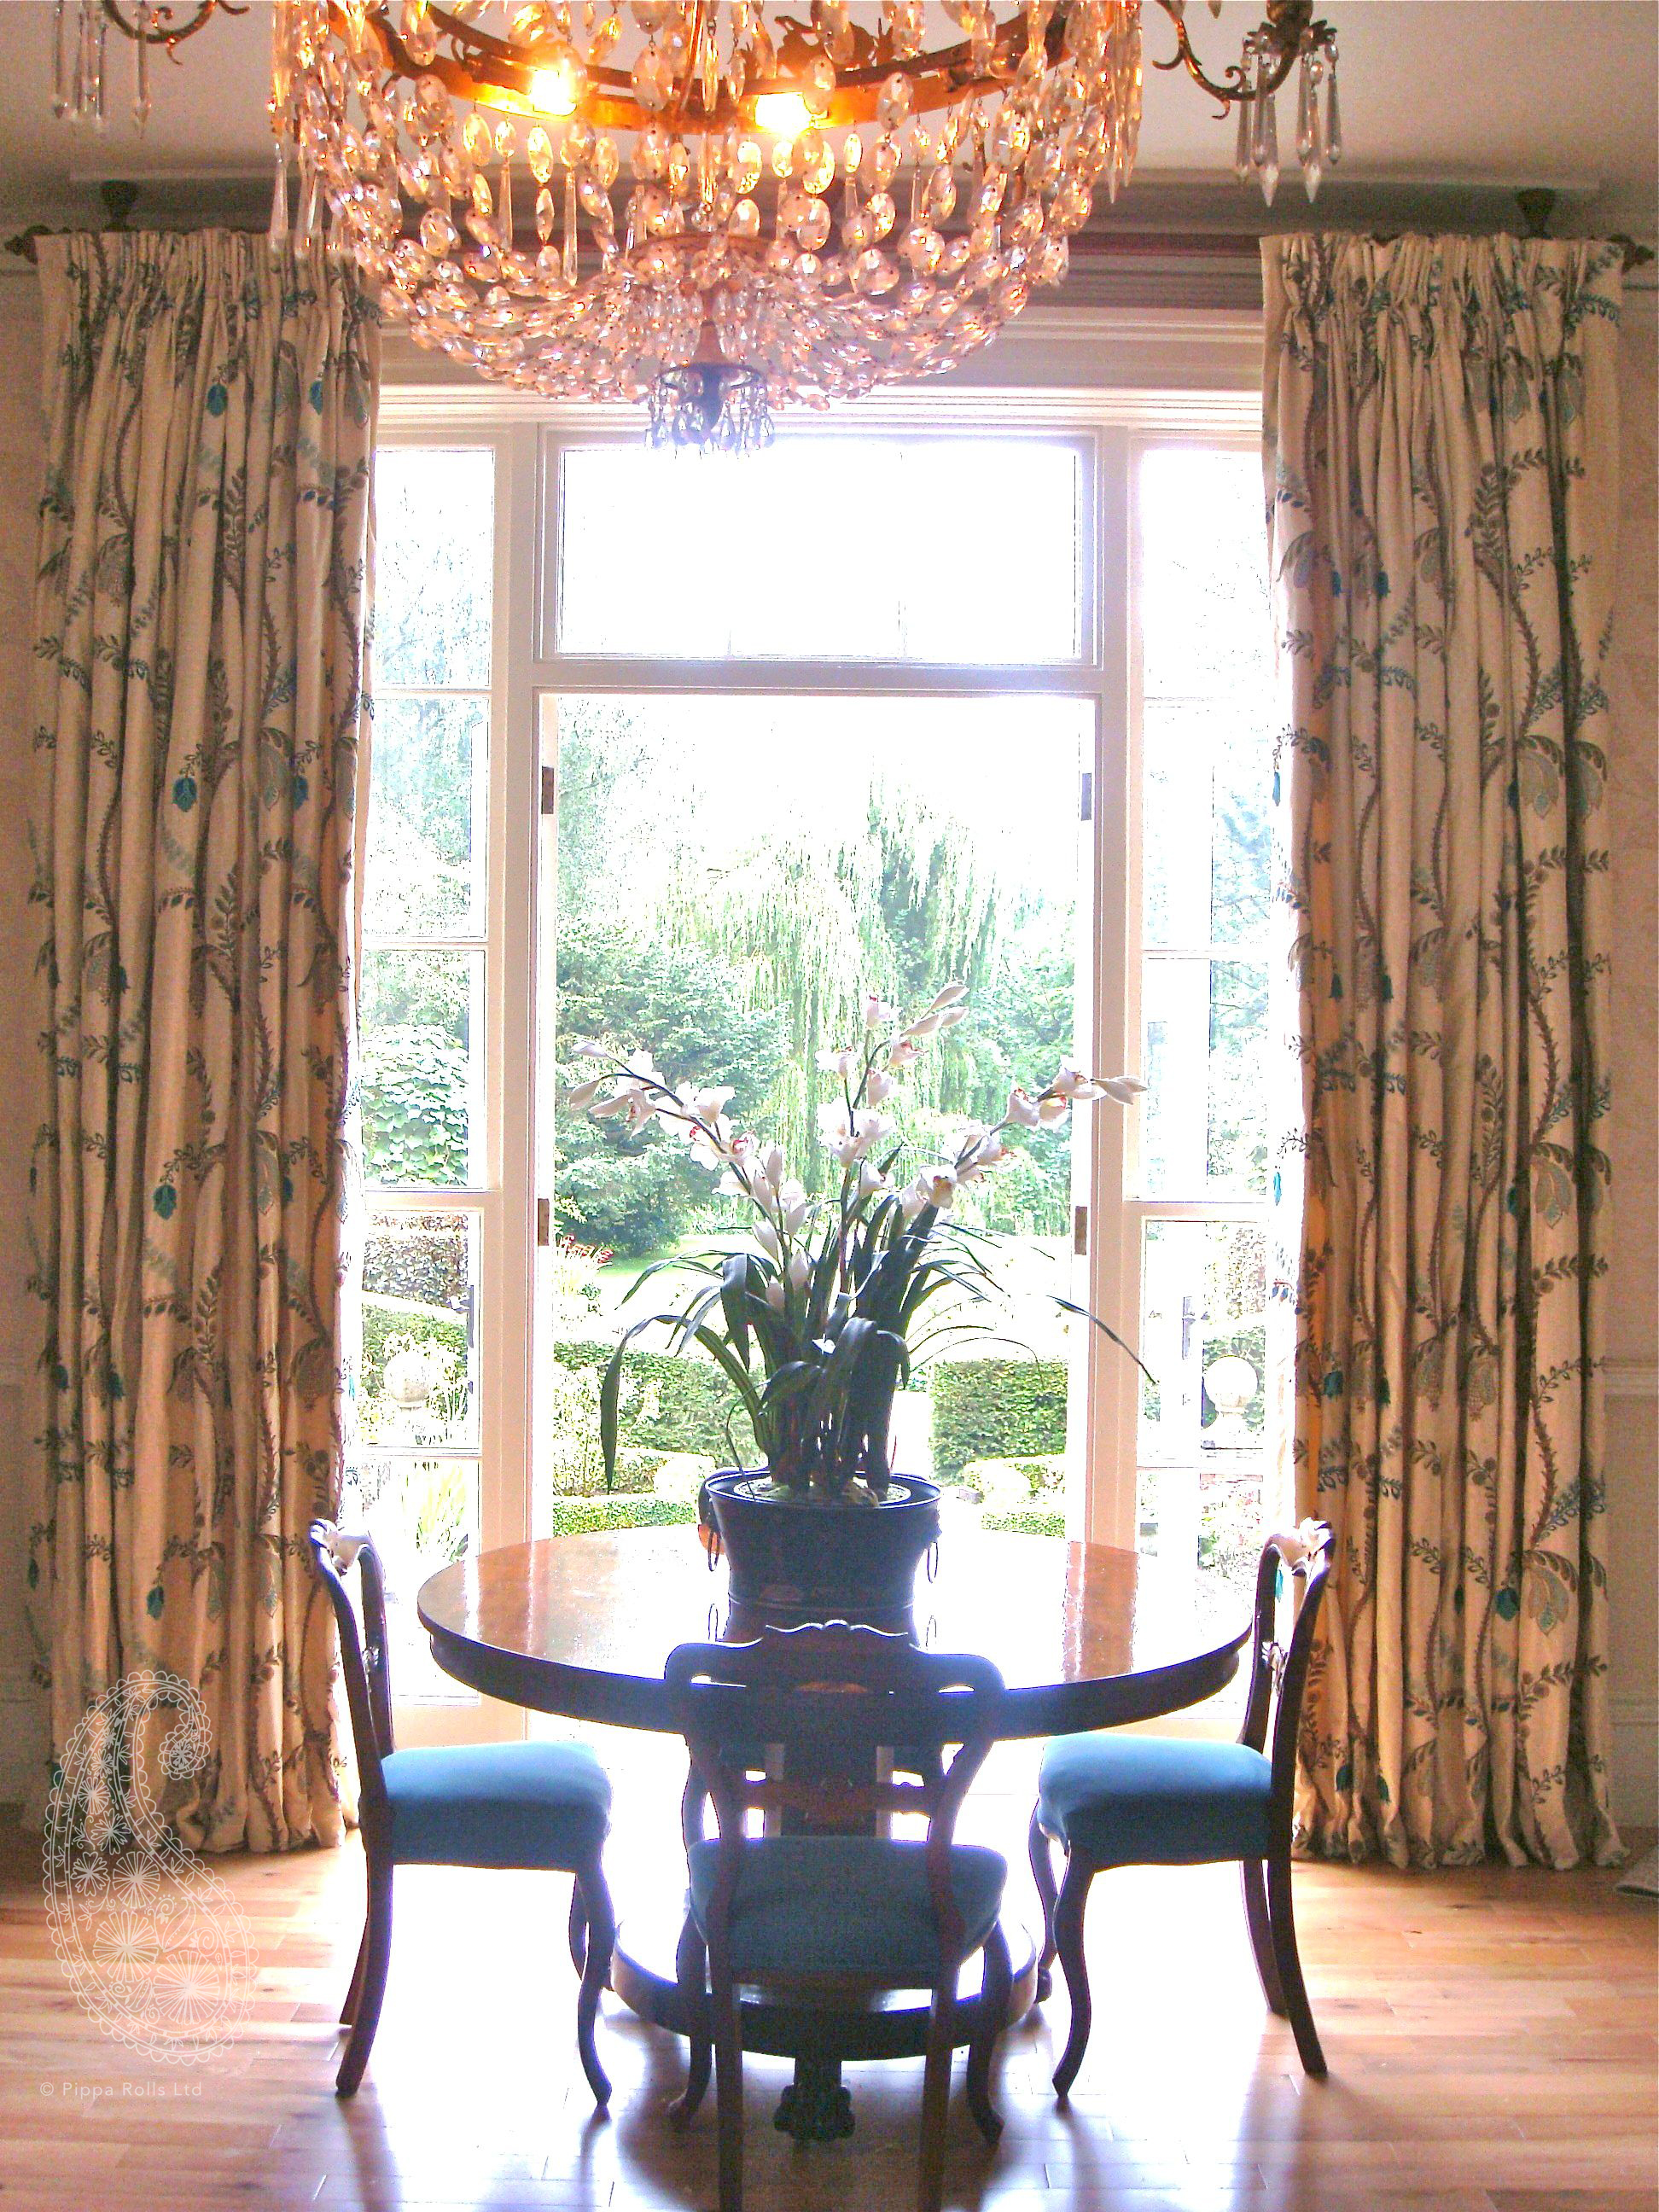 jo's french door curtains by Pippa Rolls Limited jpeg.jpg